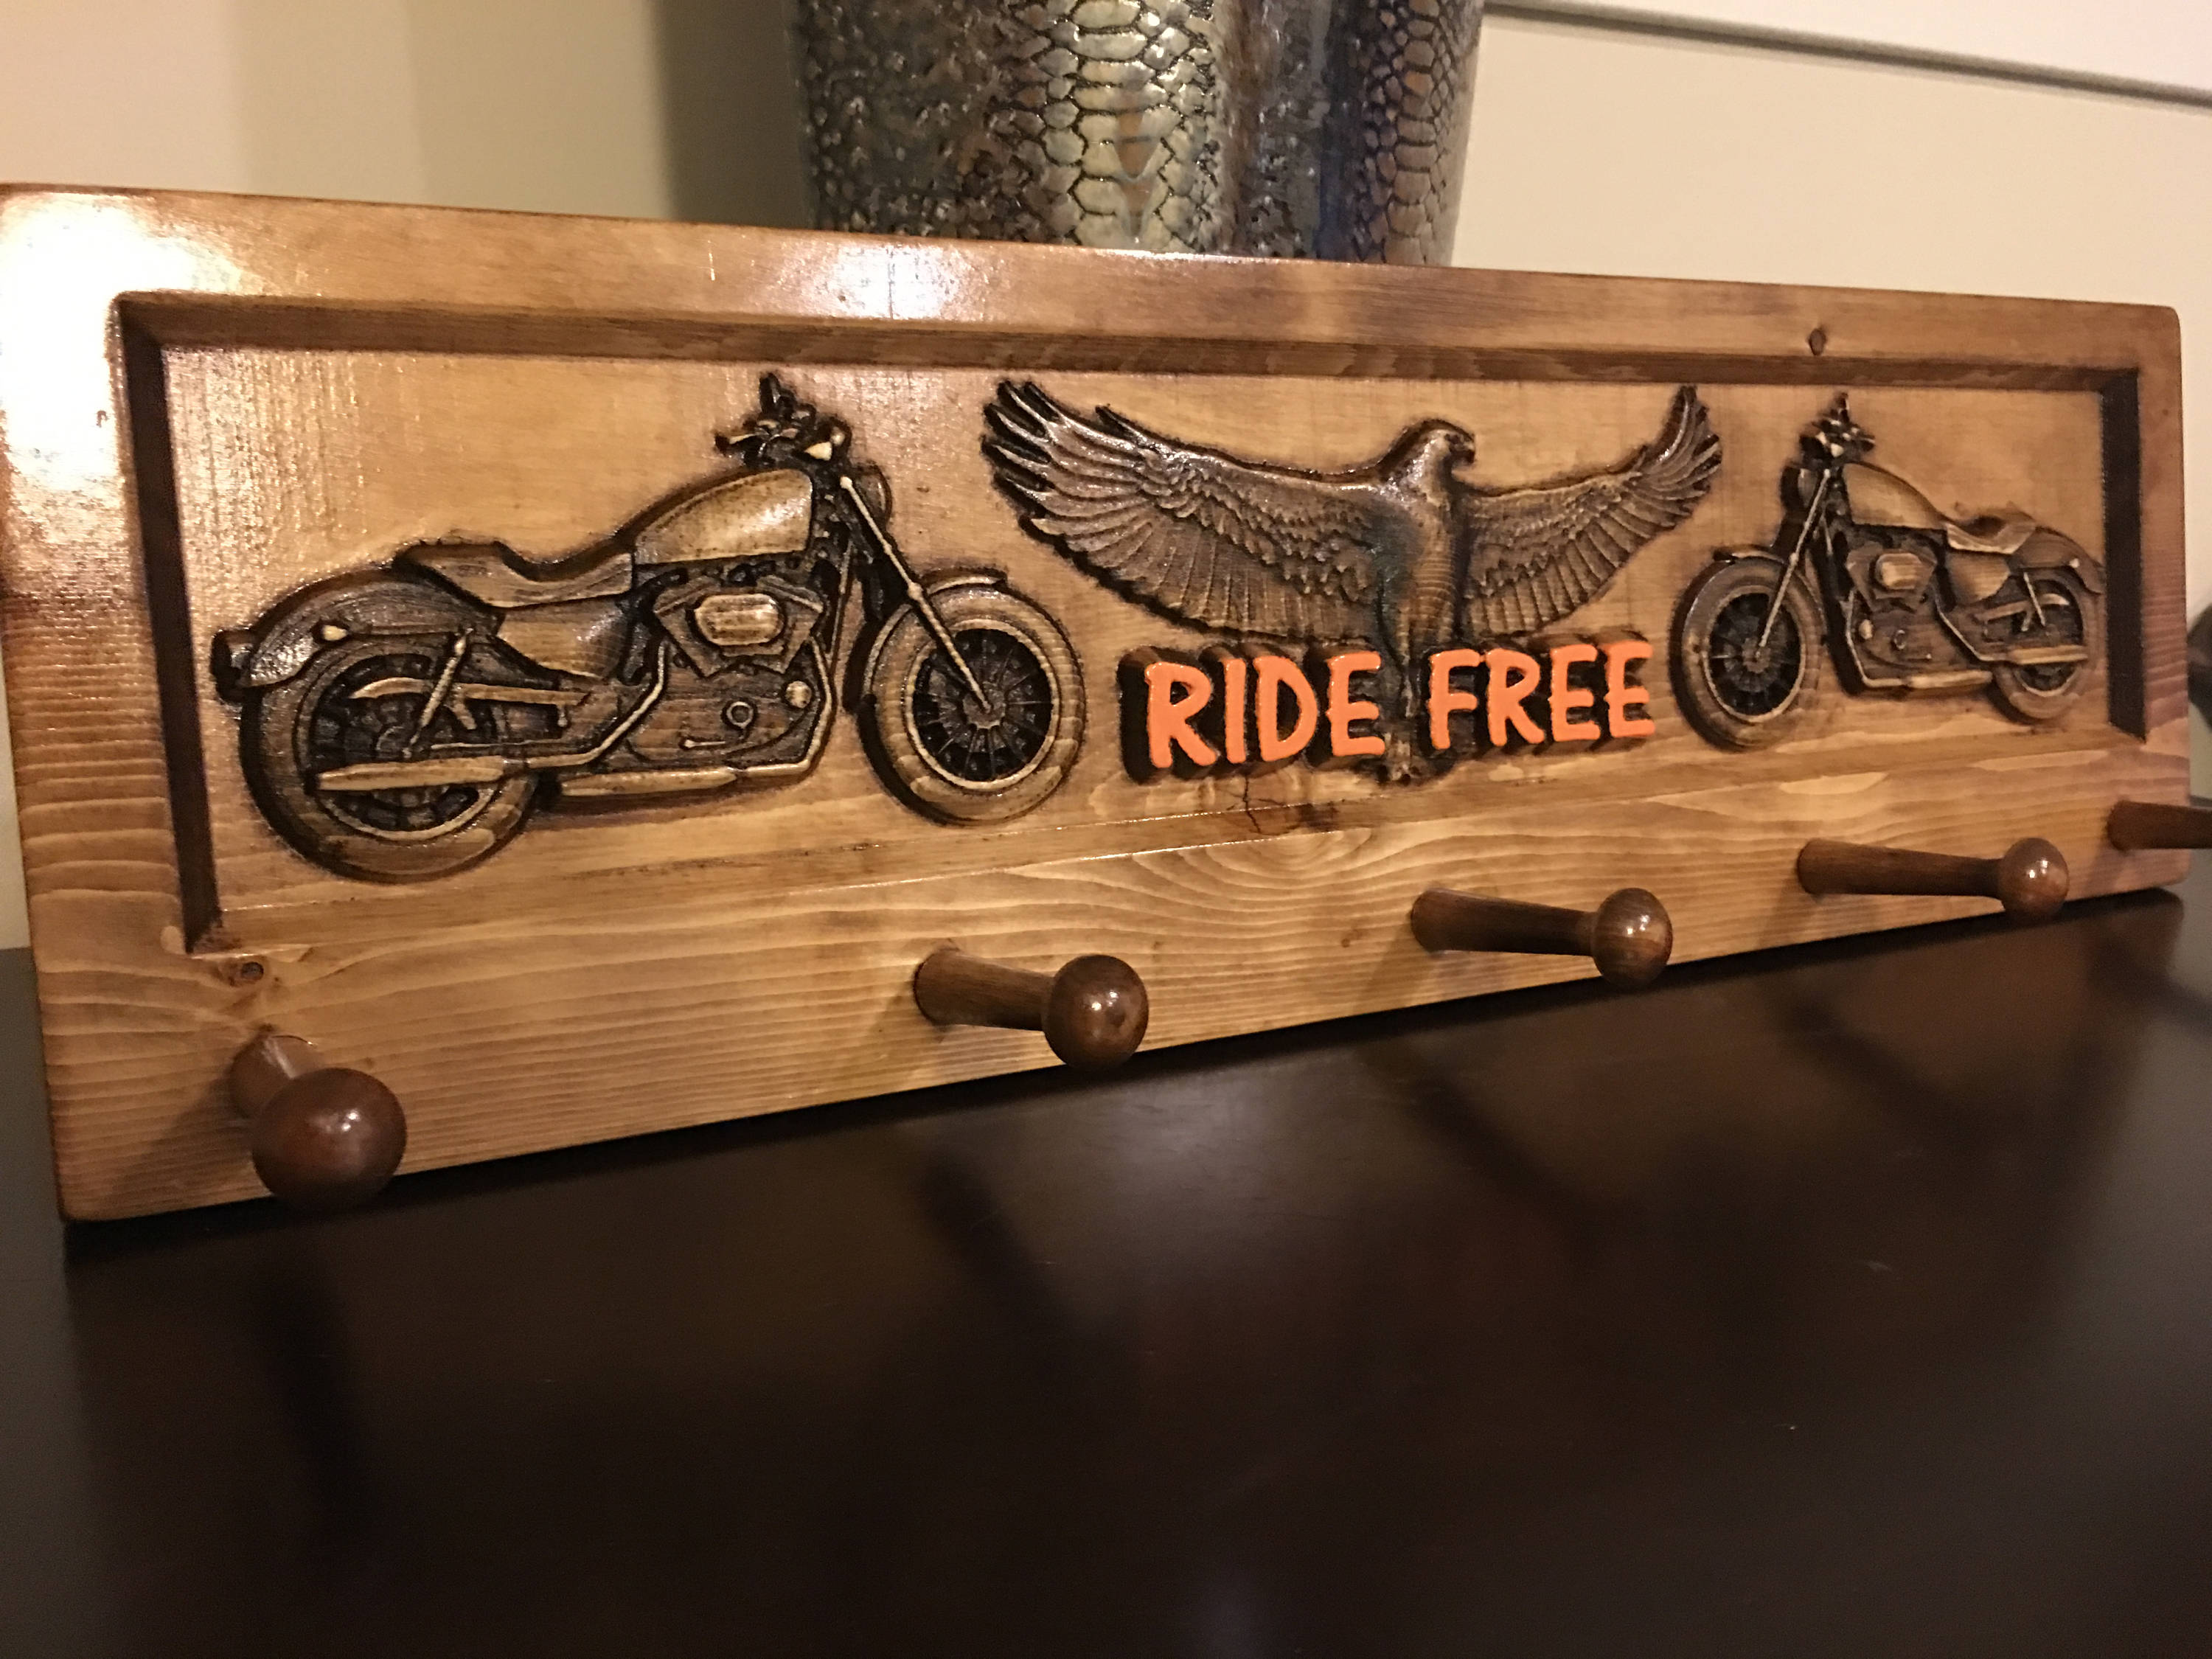 "Motorcycle Theme Decorative Coat Rack American Motorcycle Theme /""RIDE FREE/"""